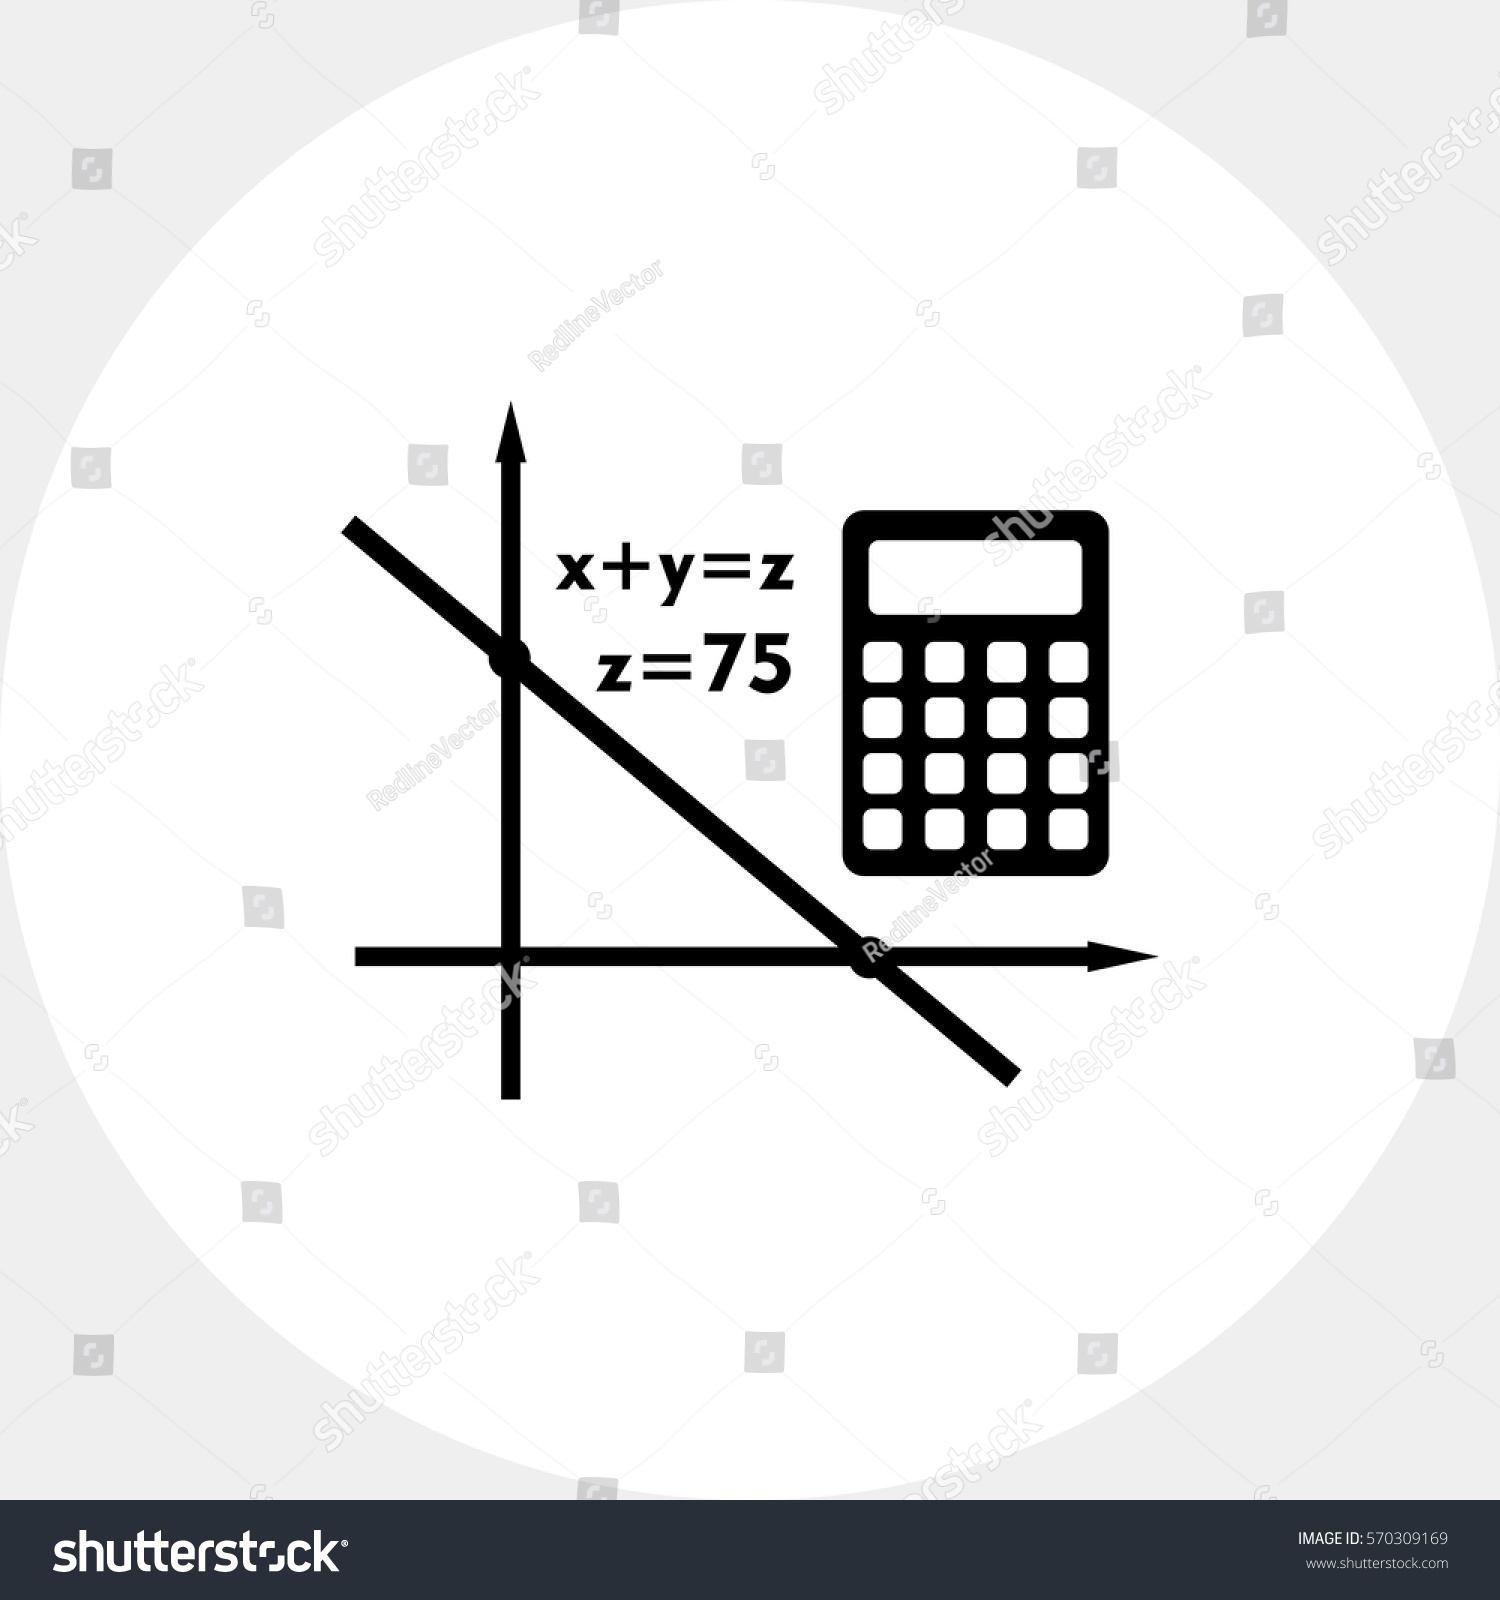 Algebra Simple Icon Stock Vector HD (Royalty Free) 570309169 ...